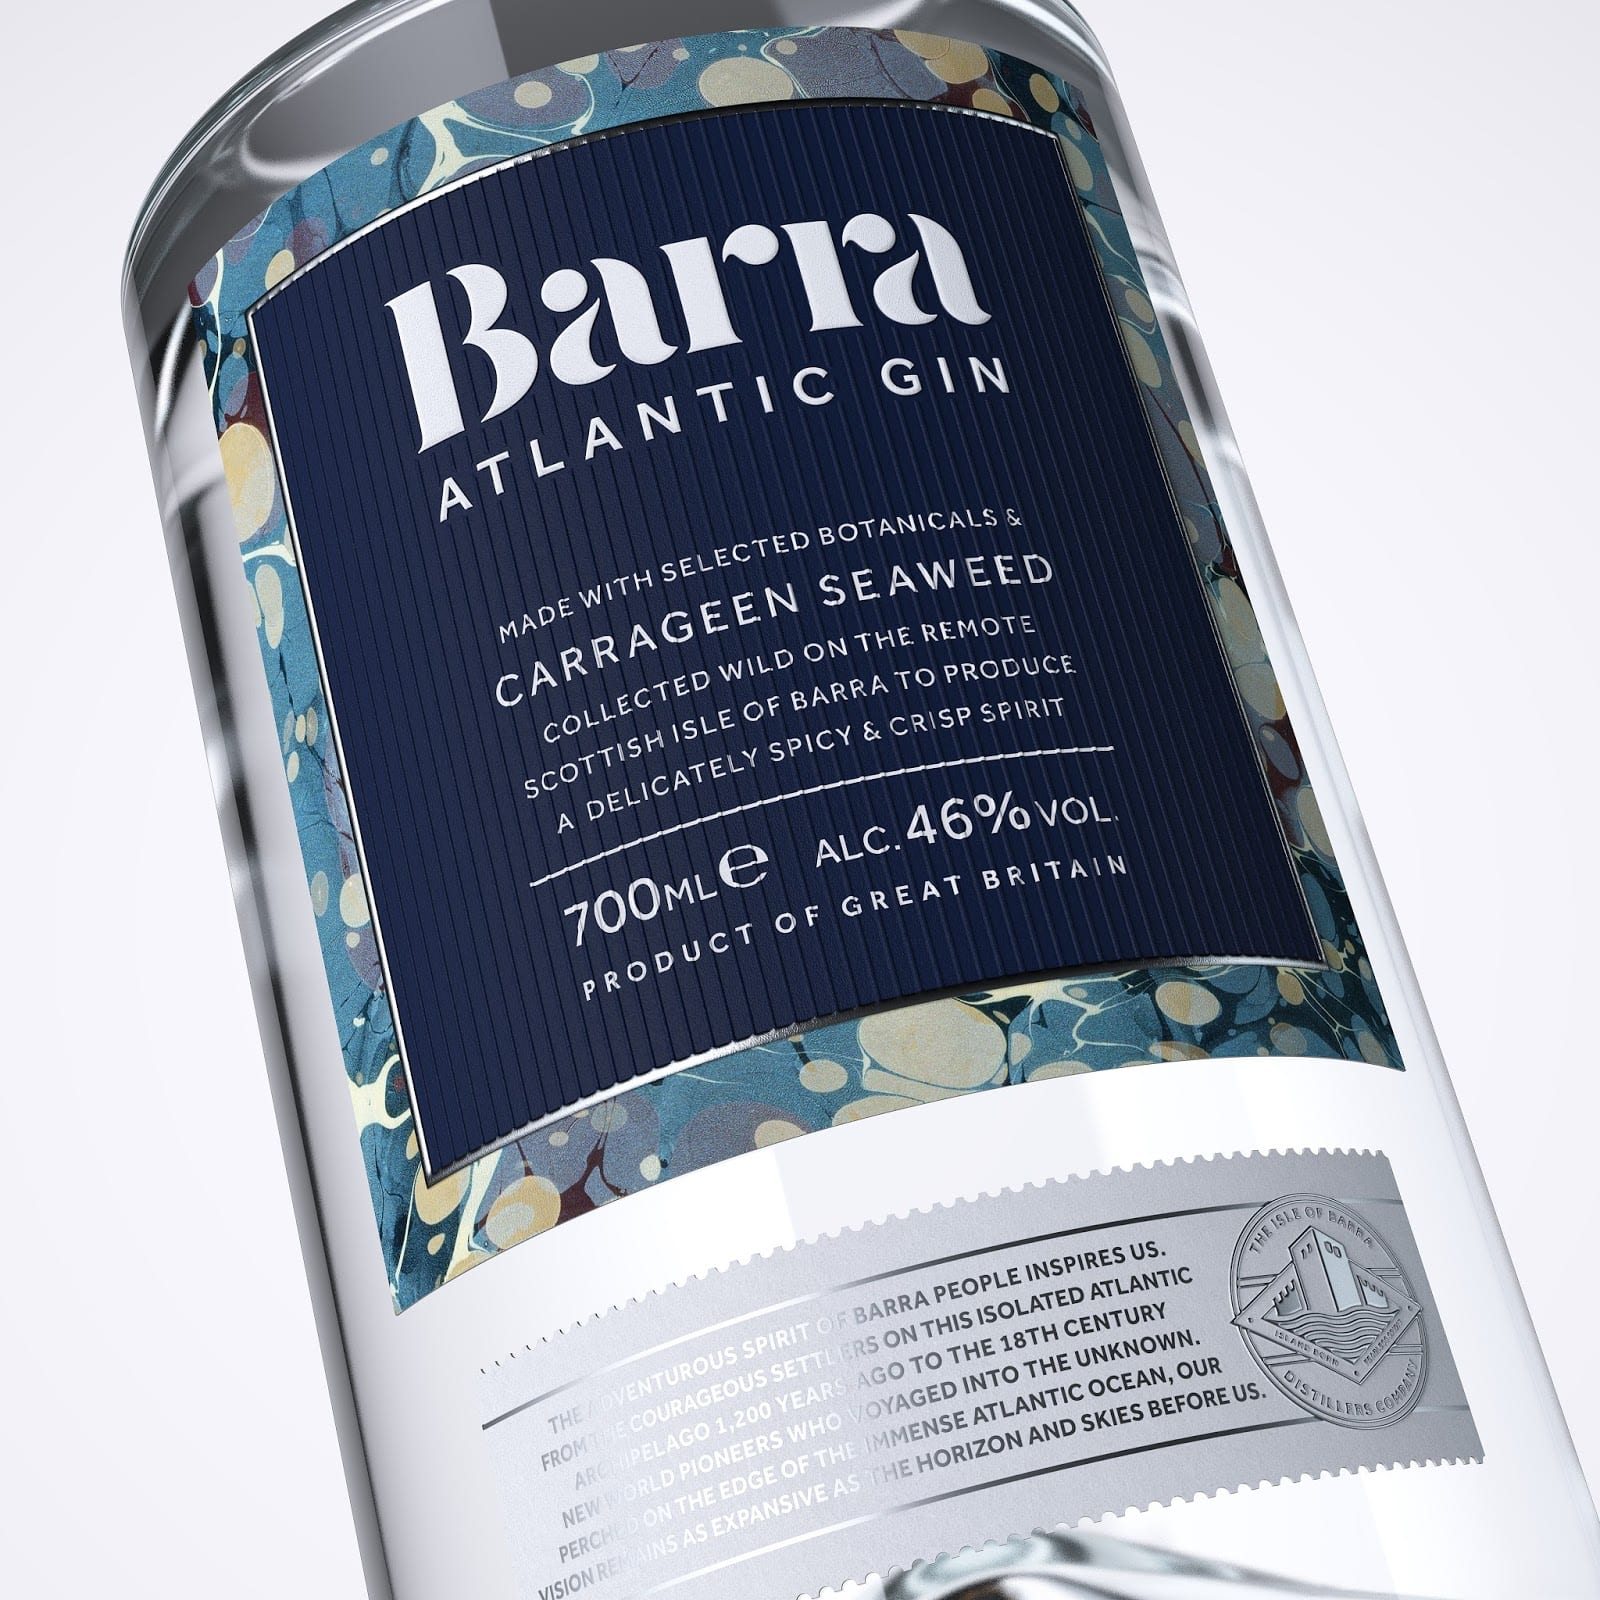 Barra Atlantic Gin 6 - Ach, tie obaly –  Barra Atlantic Gin